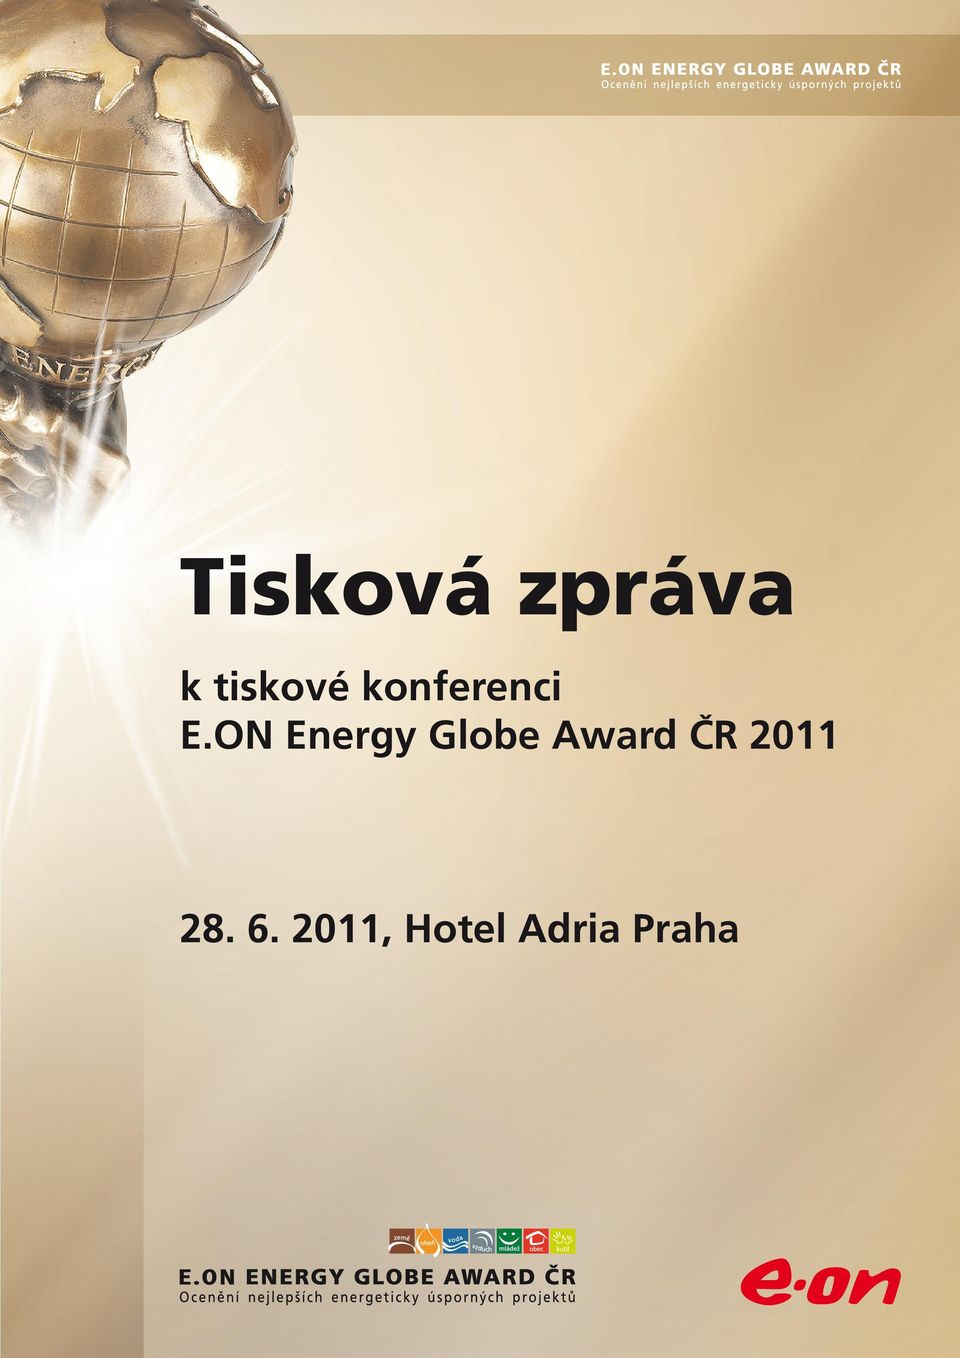 ON Energy Globe Award ČR